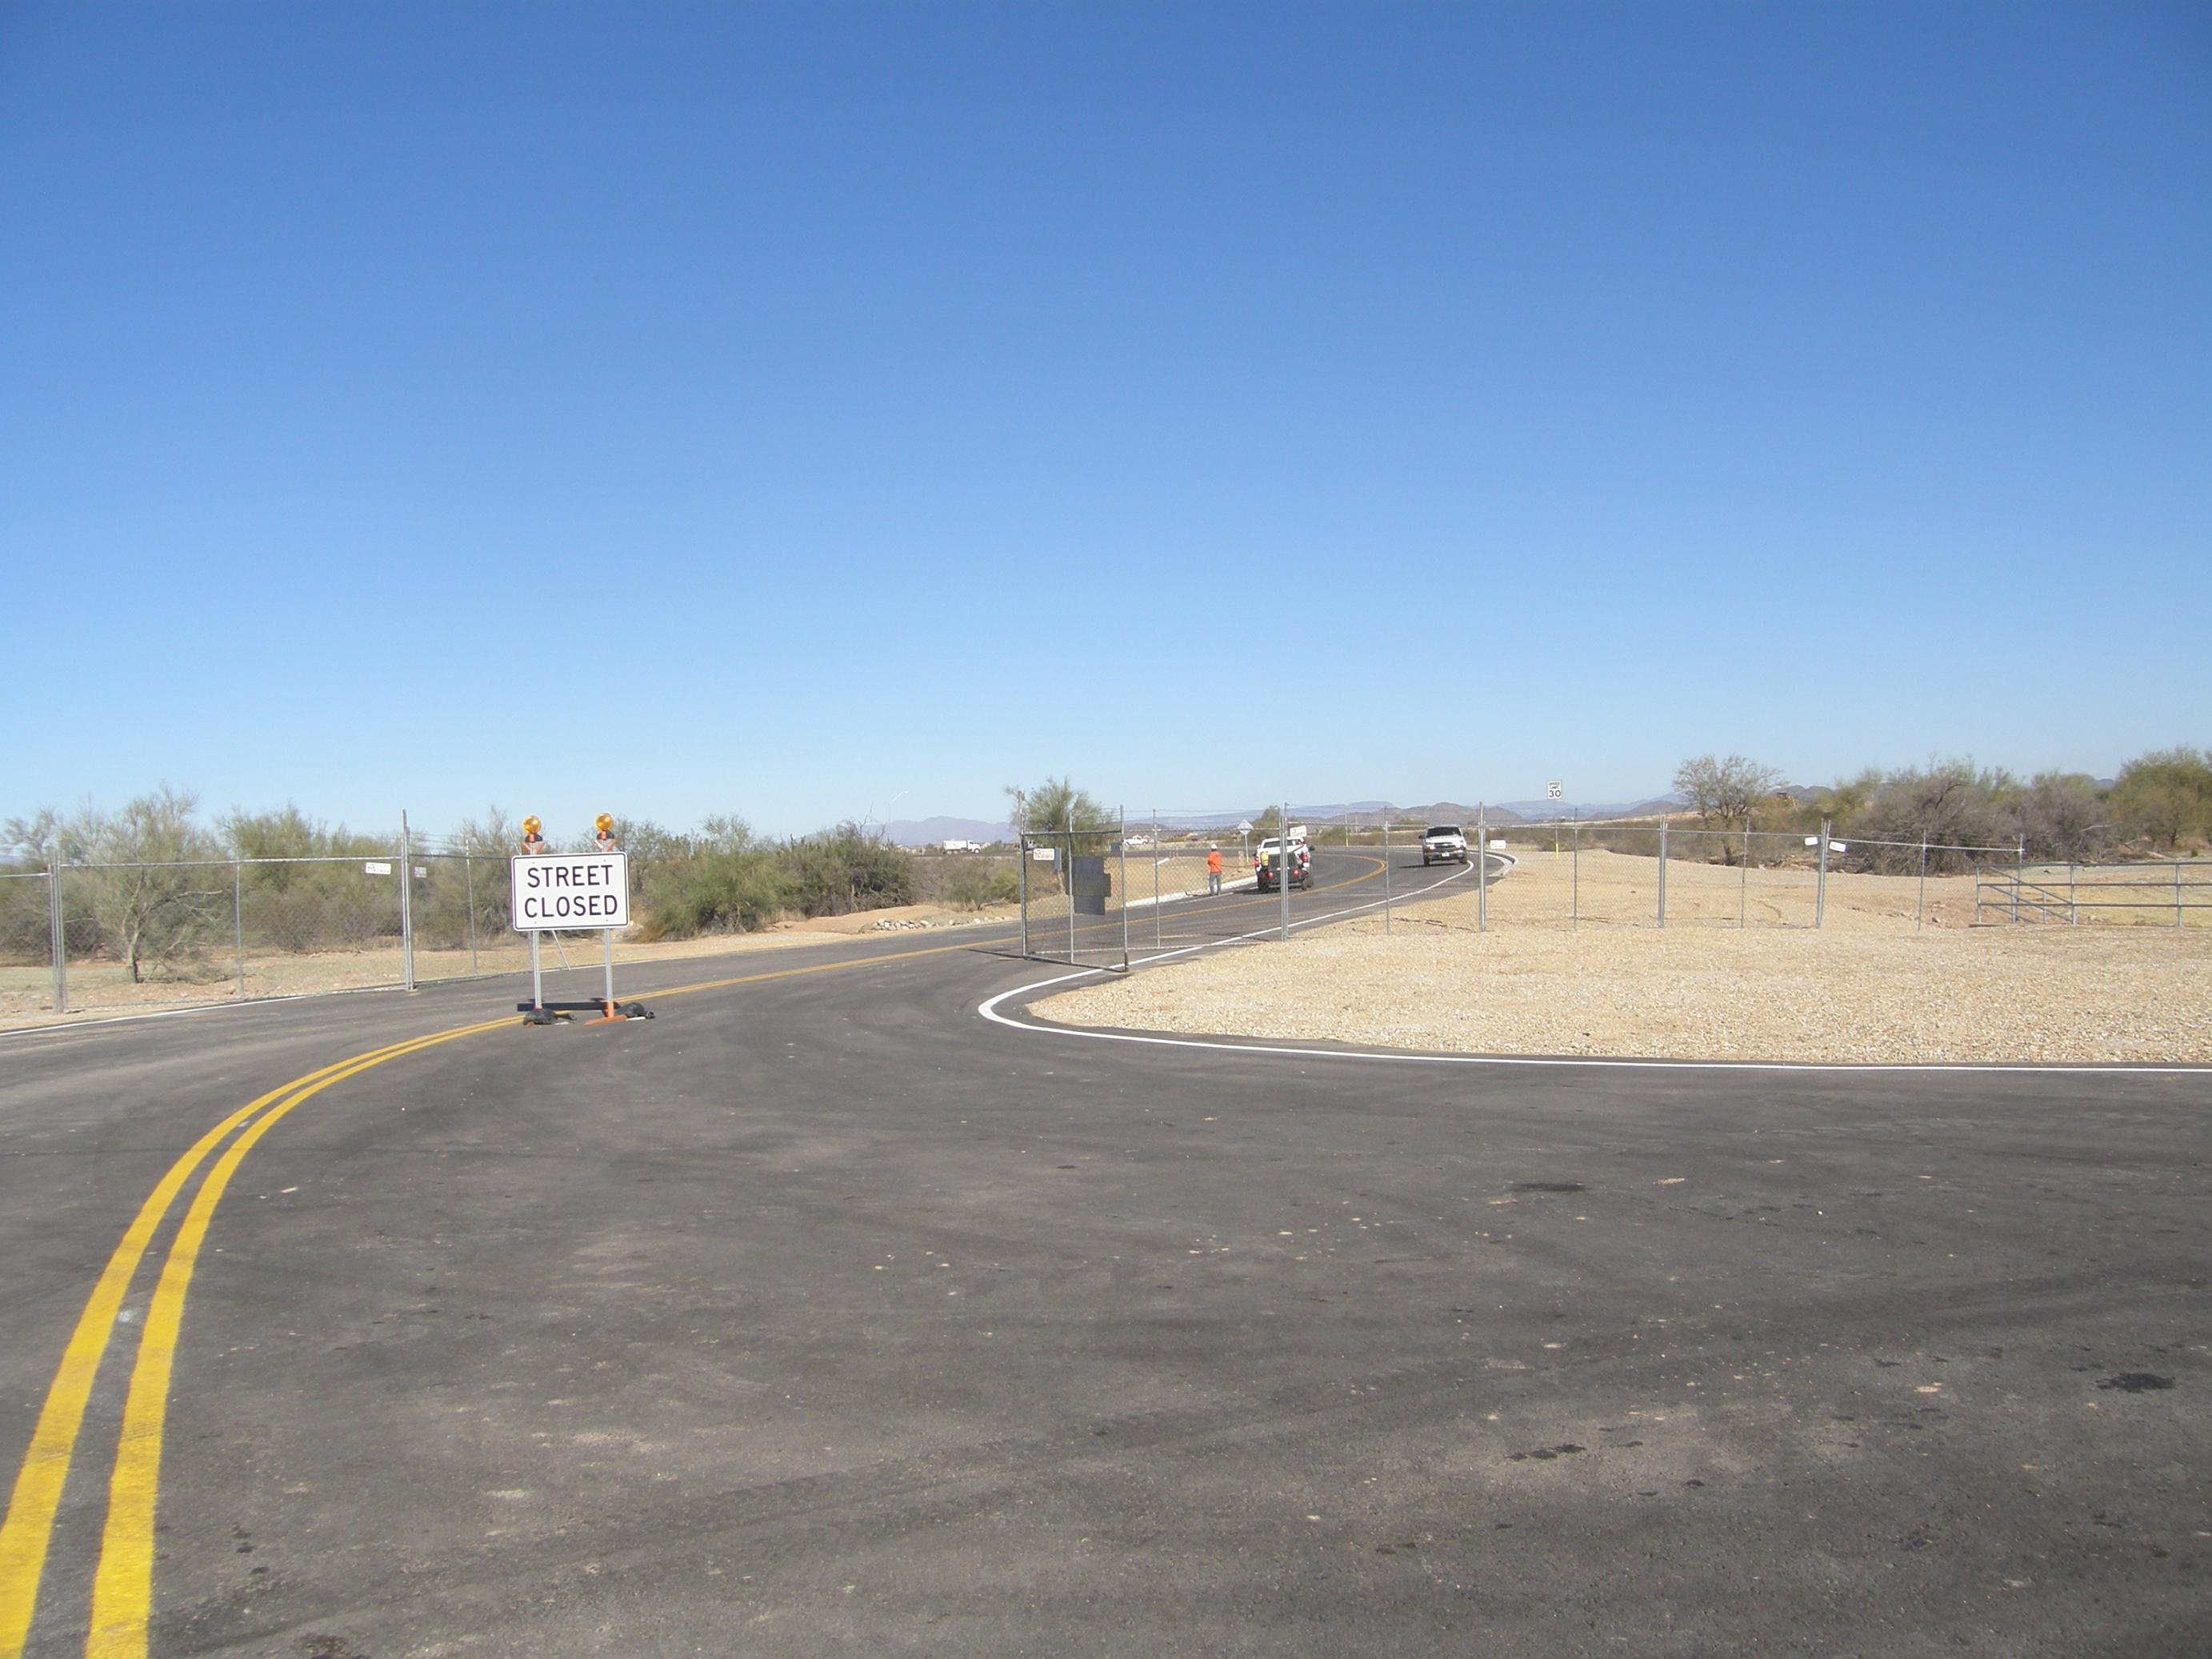 Had a chance to drive by the new road today the construction crews